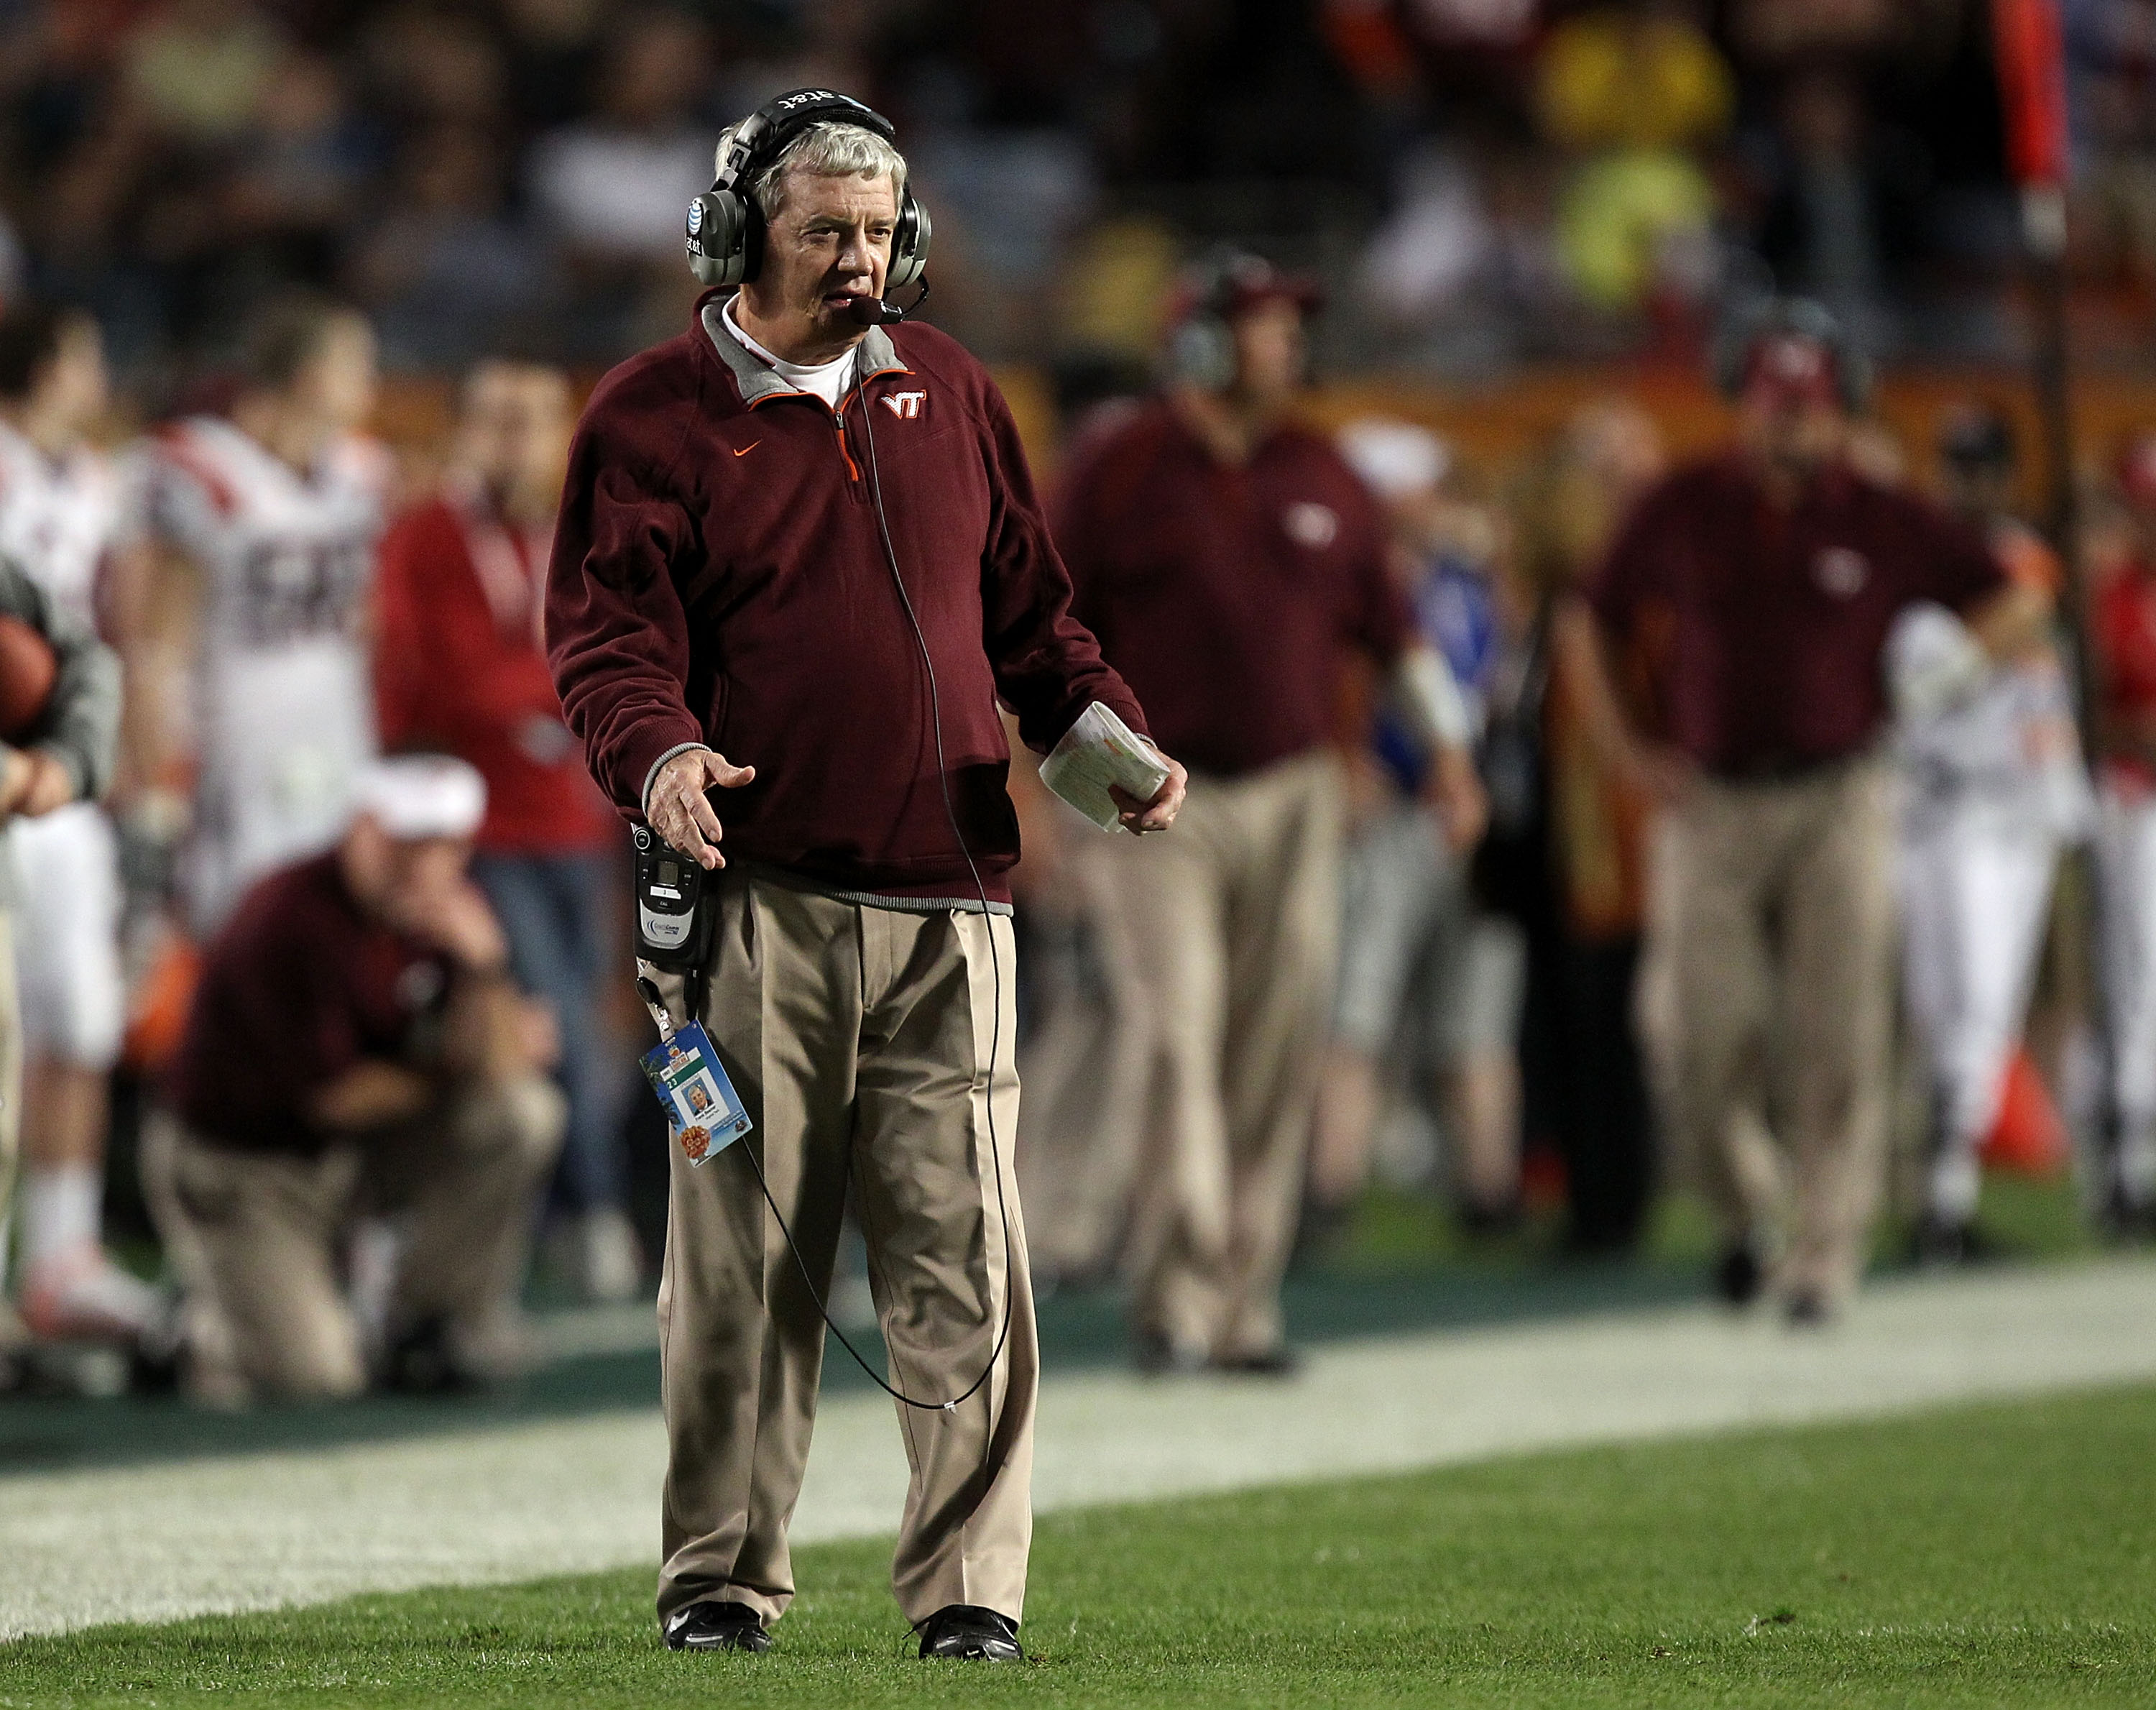 MIAMI, FL - JANUARY 03: Head coach Frank Beamer of the Virginia Tech Hokies looks on against the Stanford Cardinal during the 2011 Discover Orange Bowl at Sun Life Stadium on January 3, 2011 in Miami, Florida. Stanford won 40-12. (Photo by Streeter Lecka/